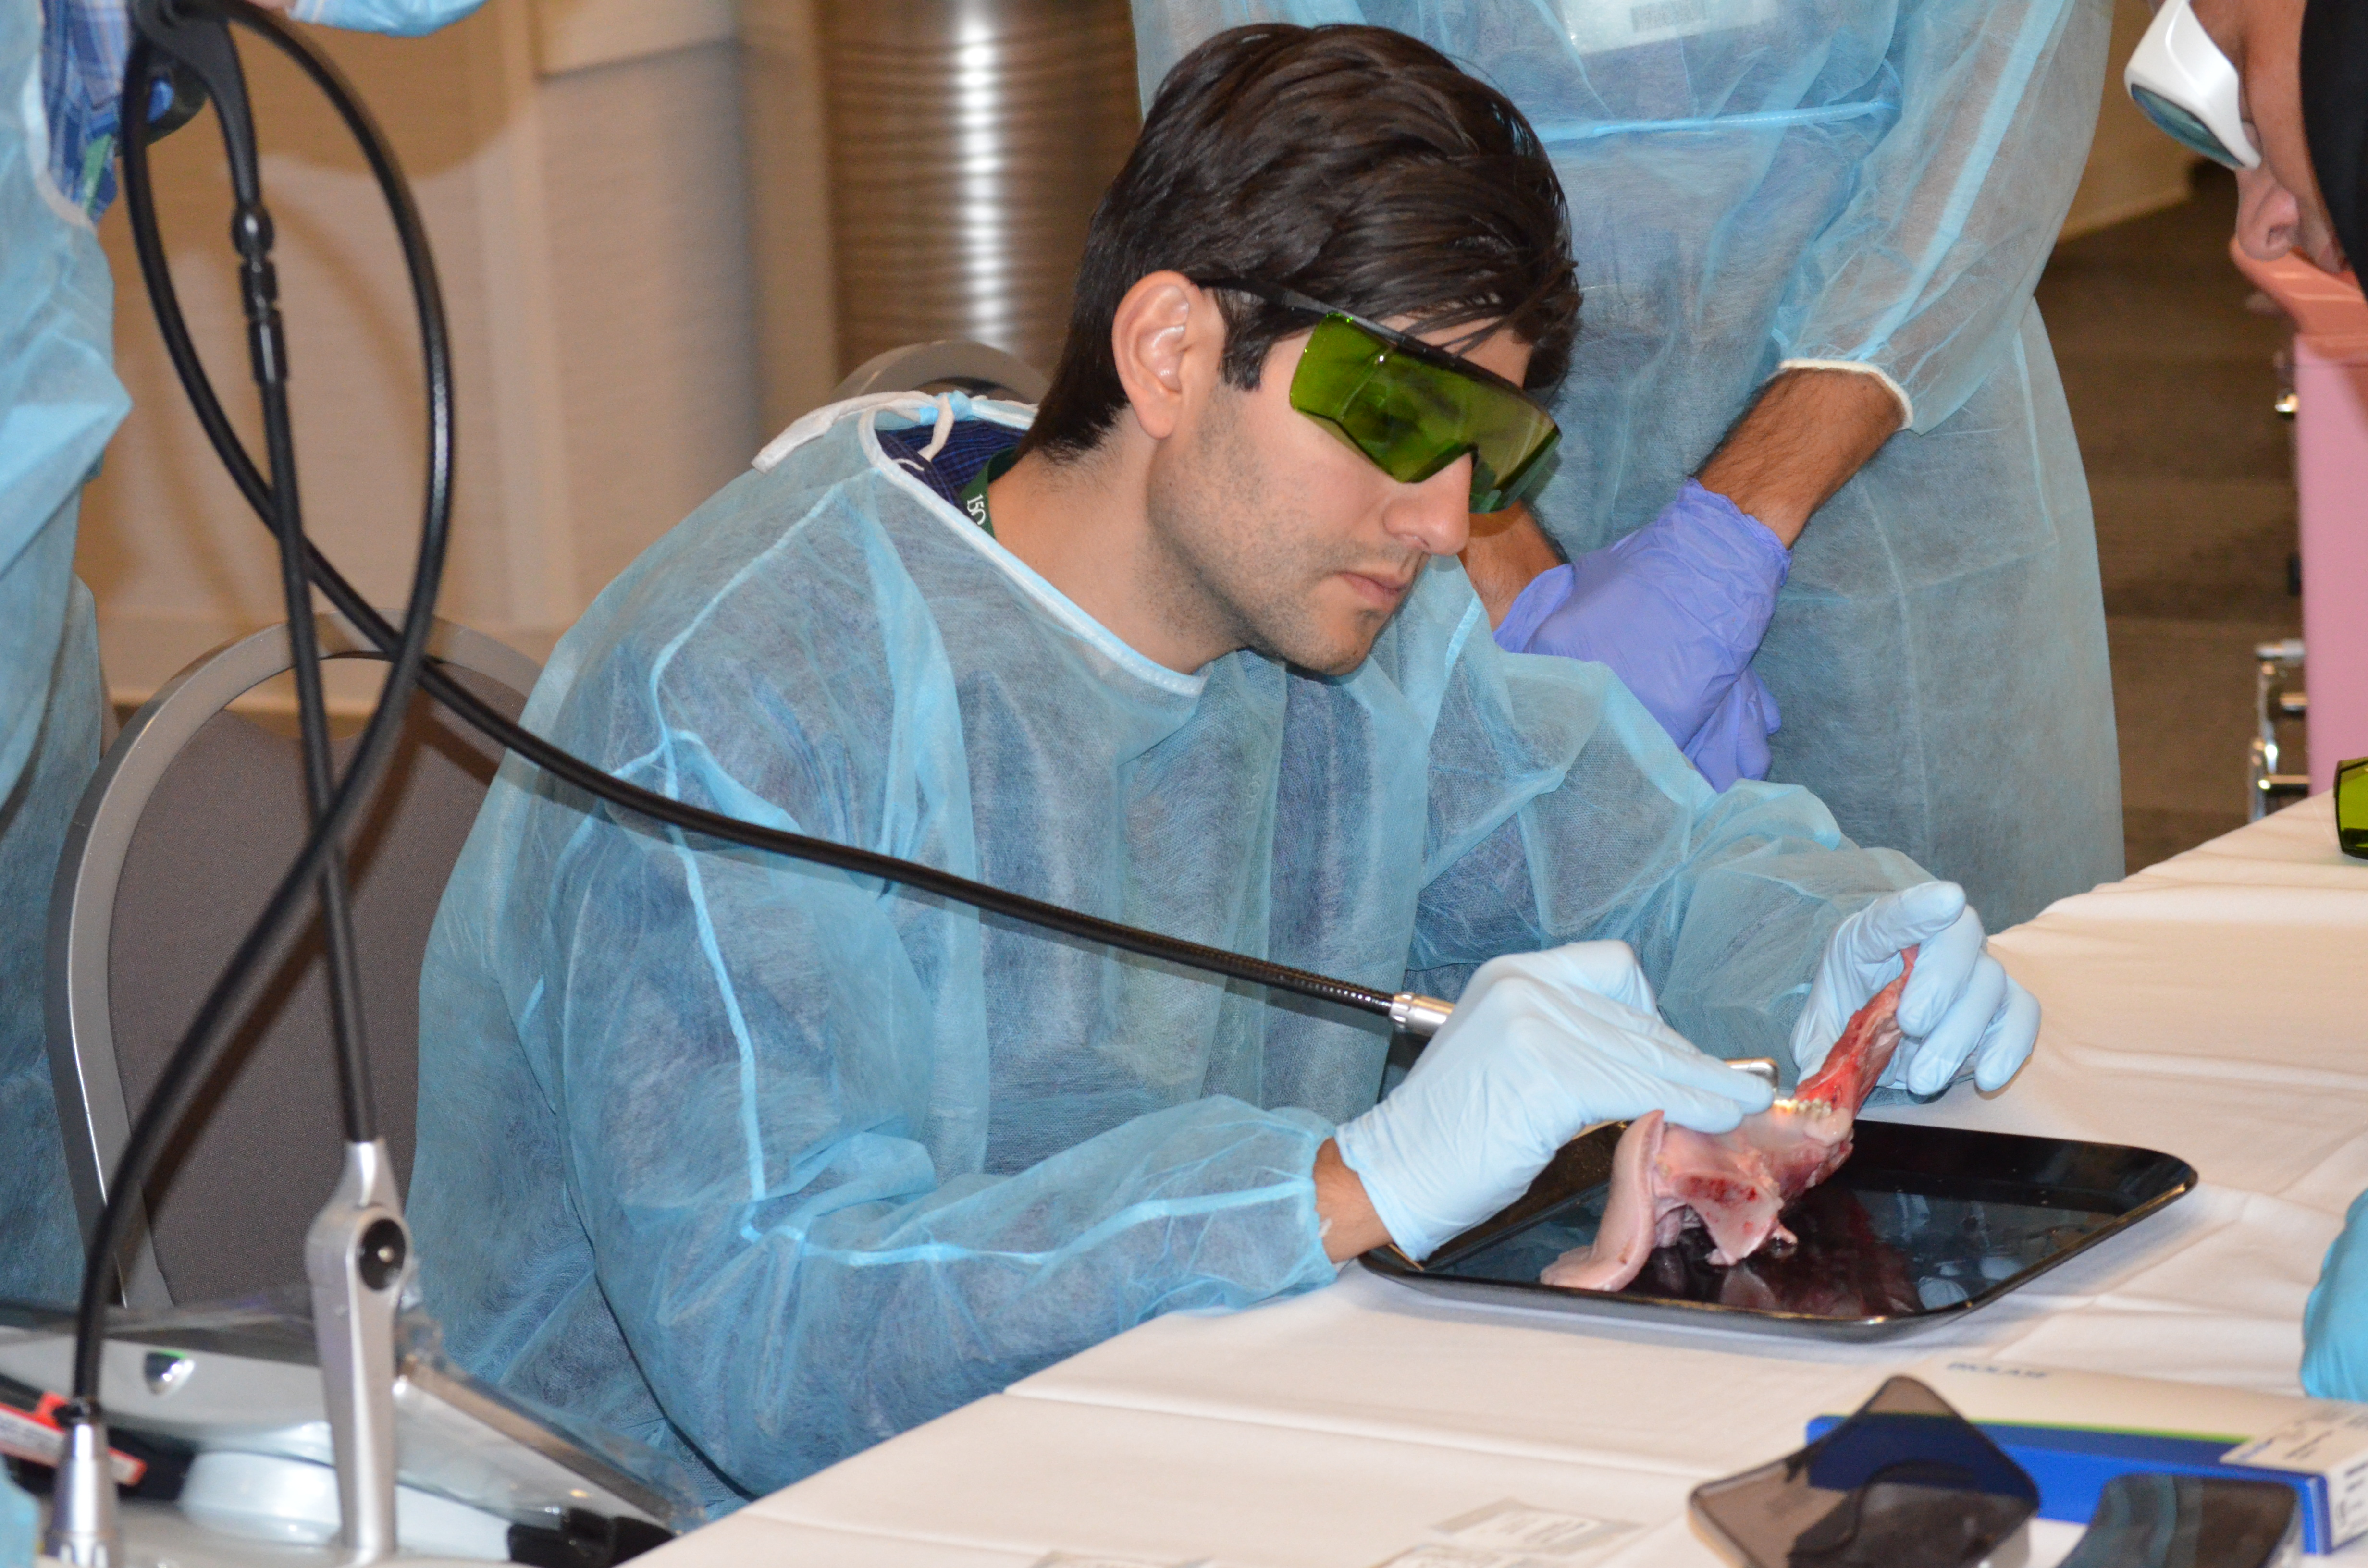 Dentist attends CE course at Annual Session